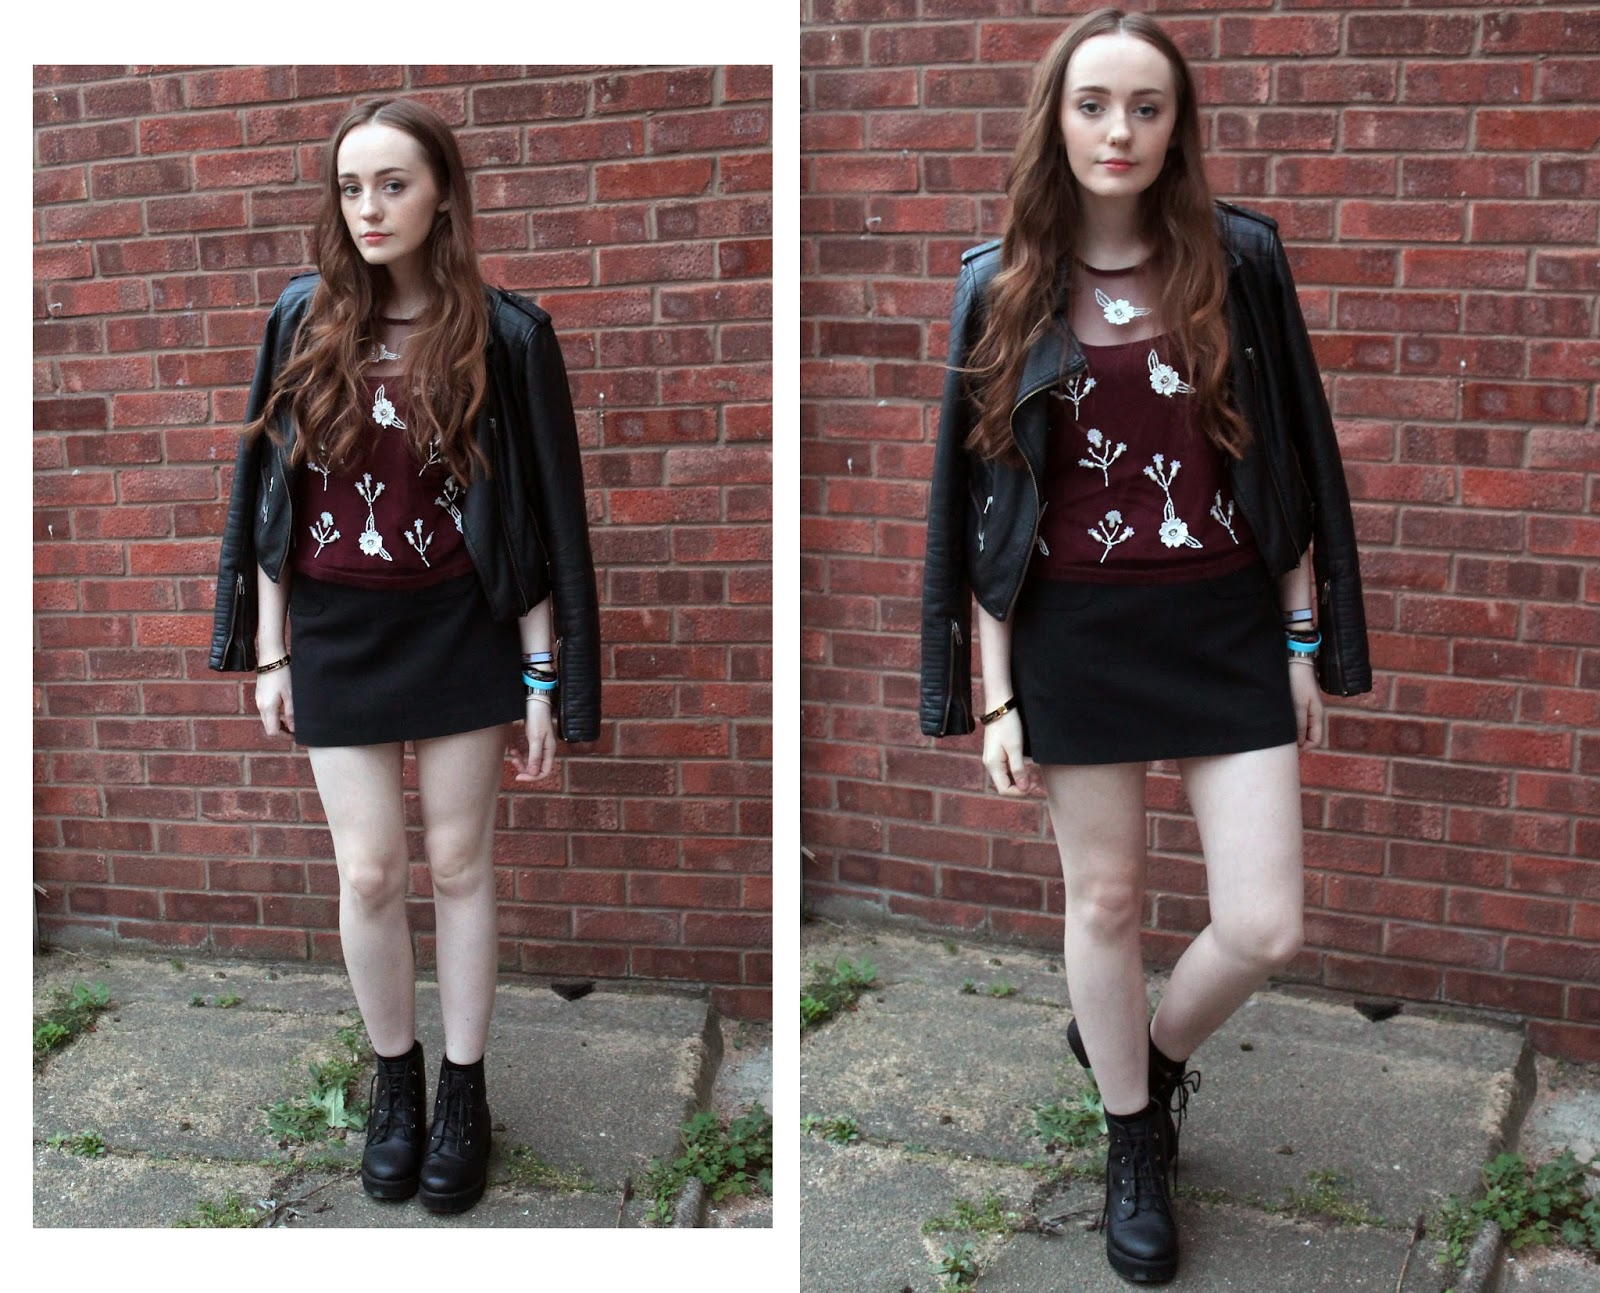 OOTD featuring glamorous burgundy embellished top from get the label blogger review